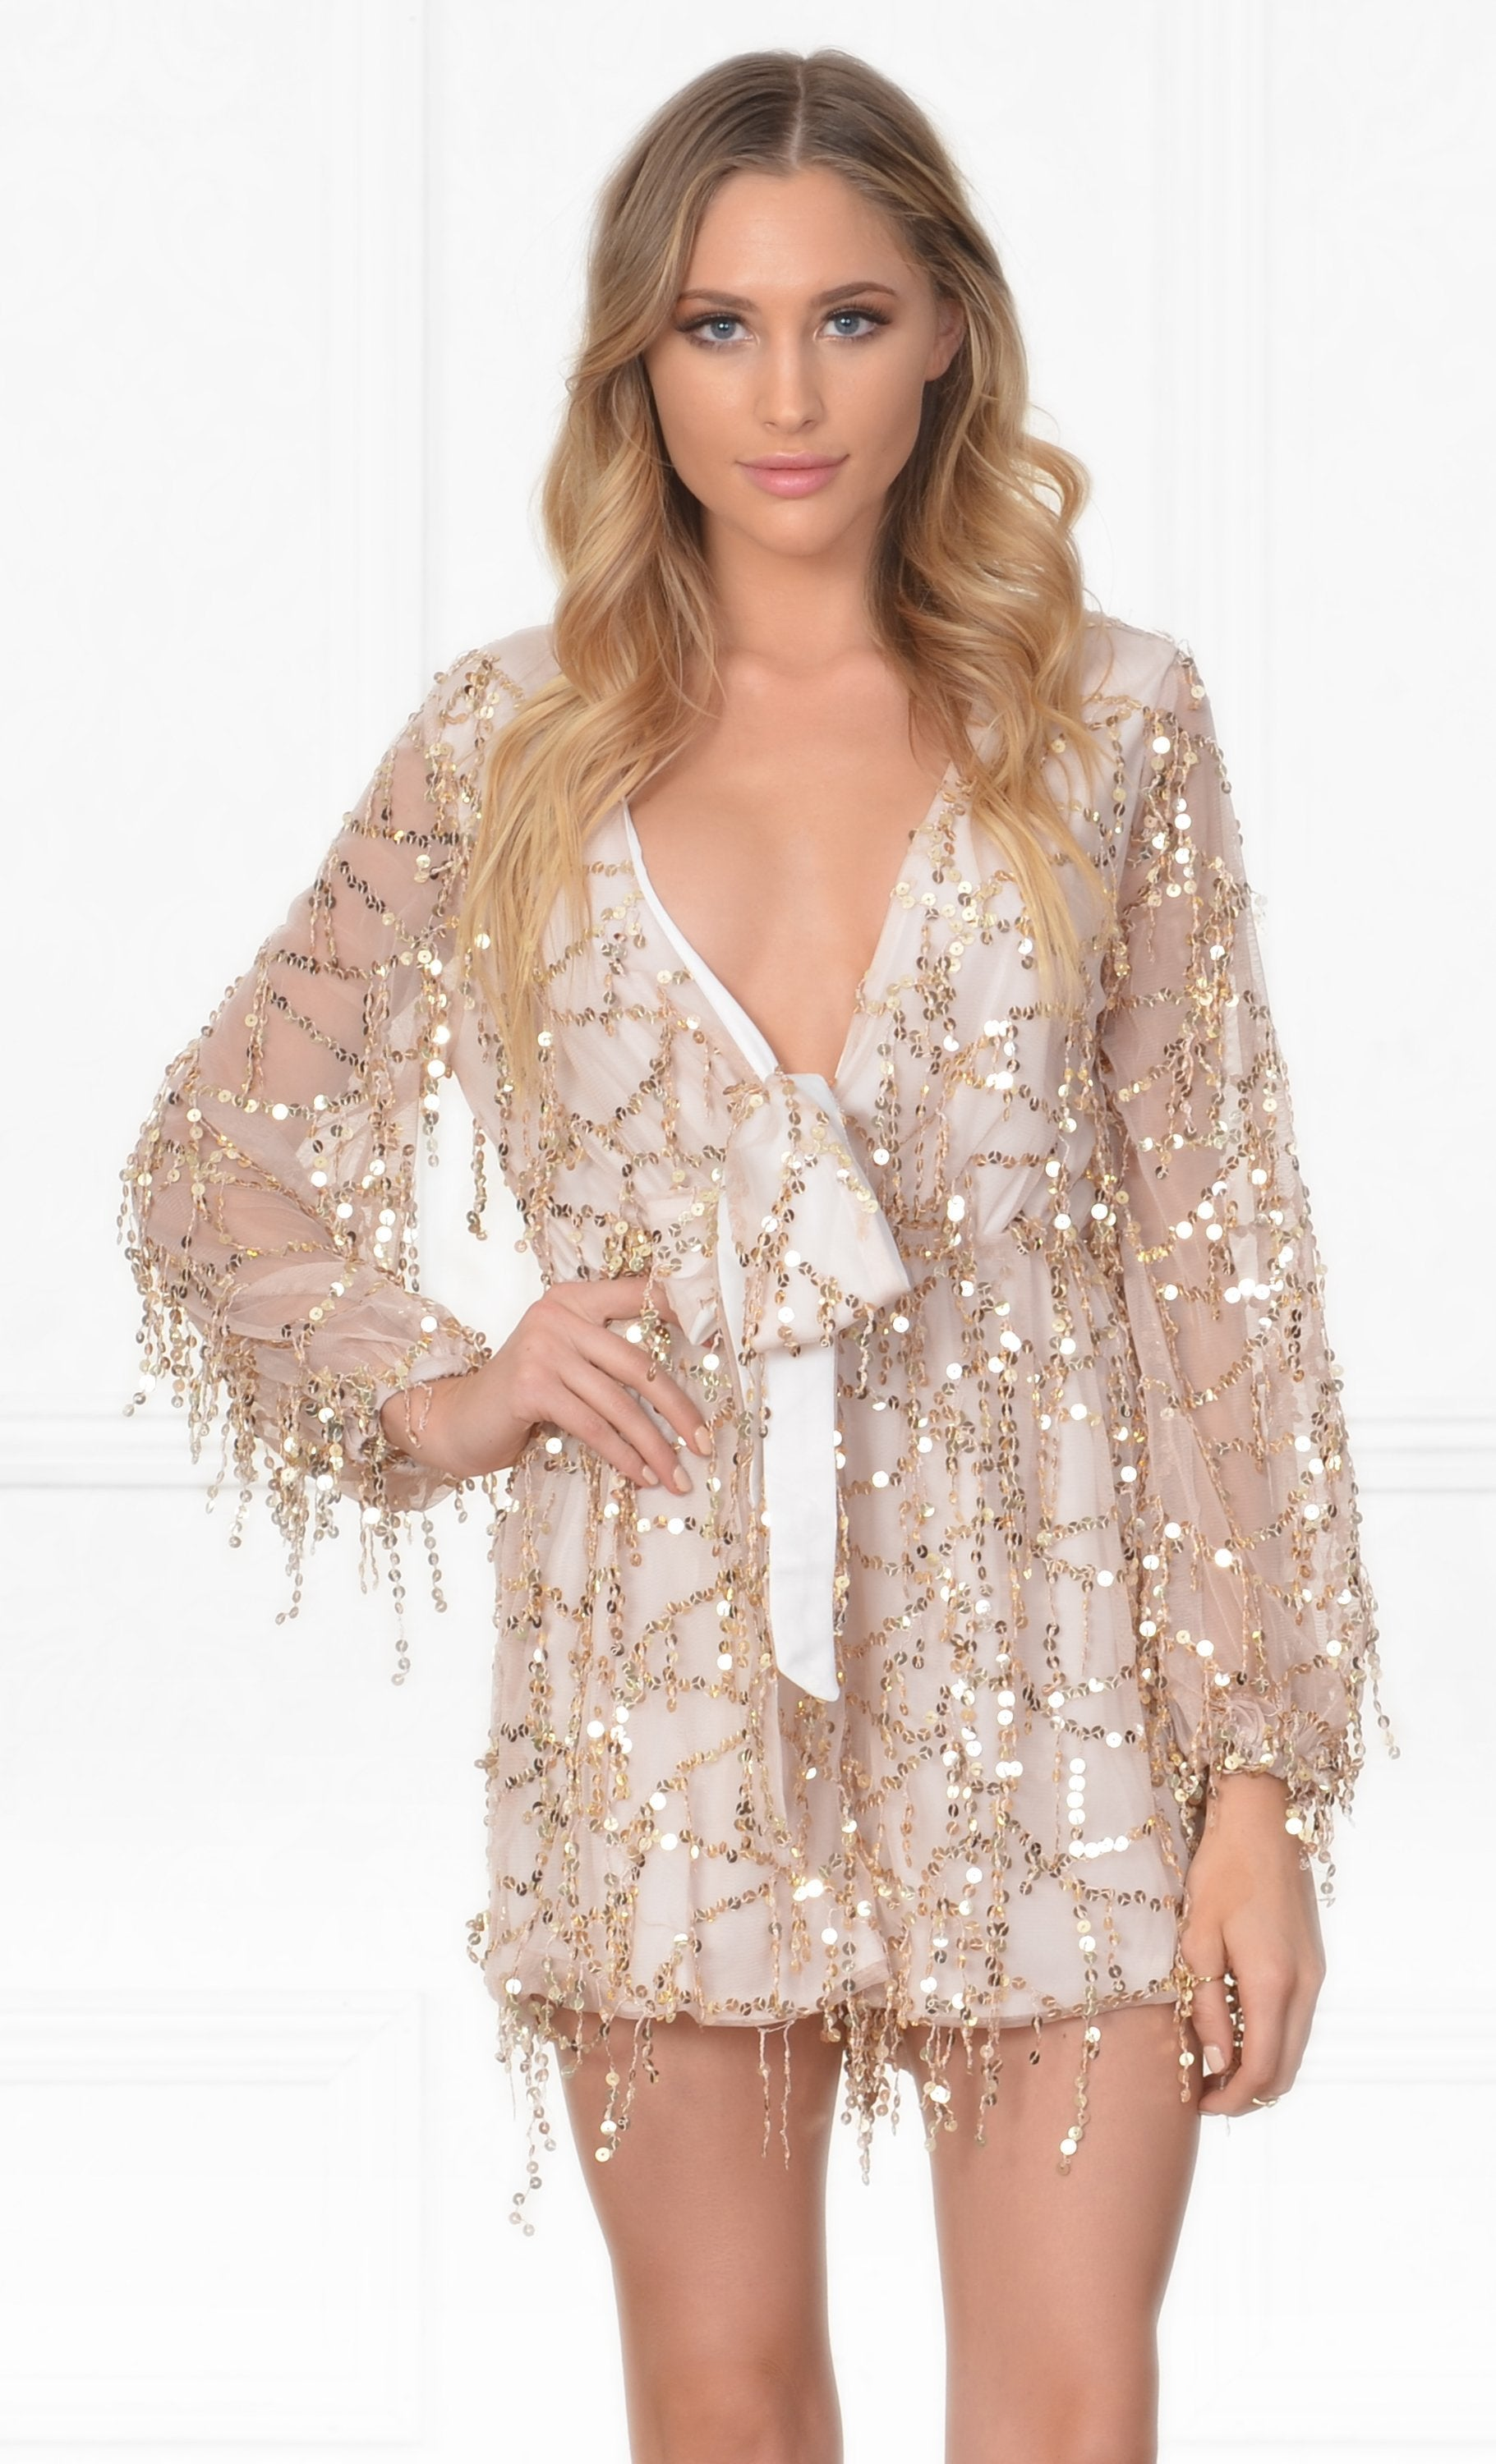 Indie XO Dream Maker White Gold Sequin Fringe Long Sleeve Cross Wrap V Neck Romper  -  Sold Out